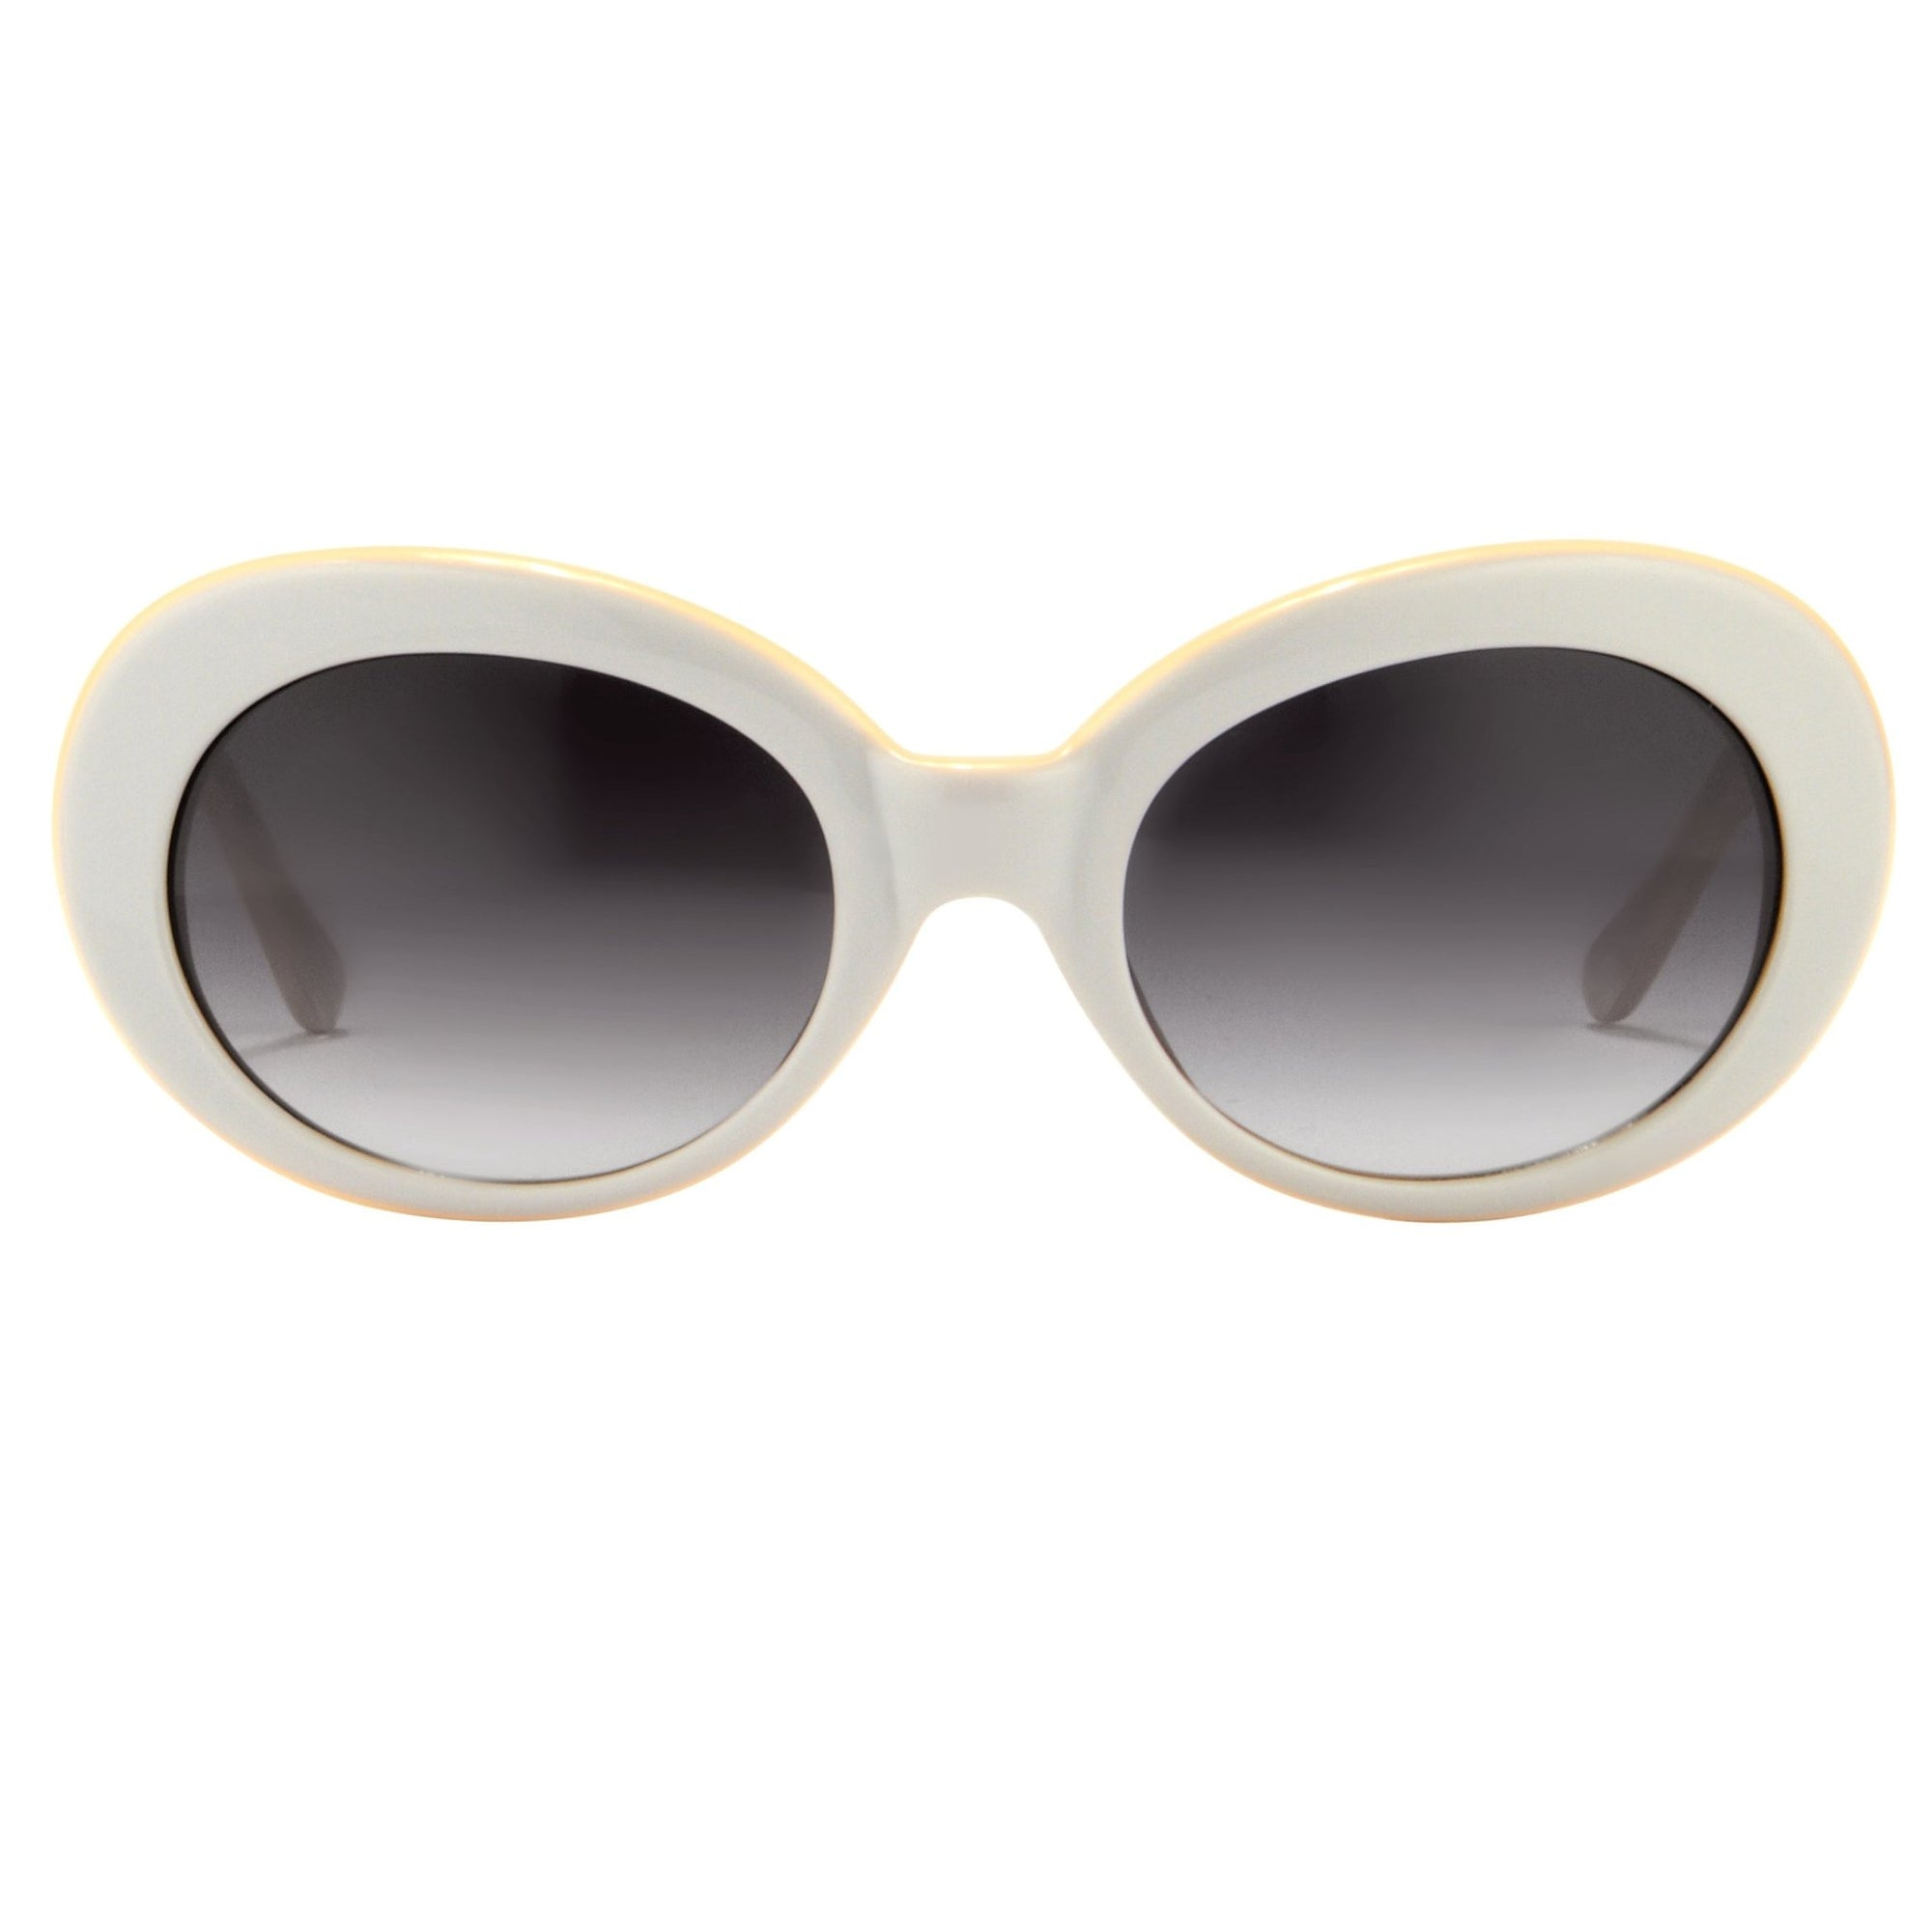 Agent Provocateur Sunglasses Oval Grey/Apricot and Grey